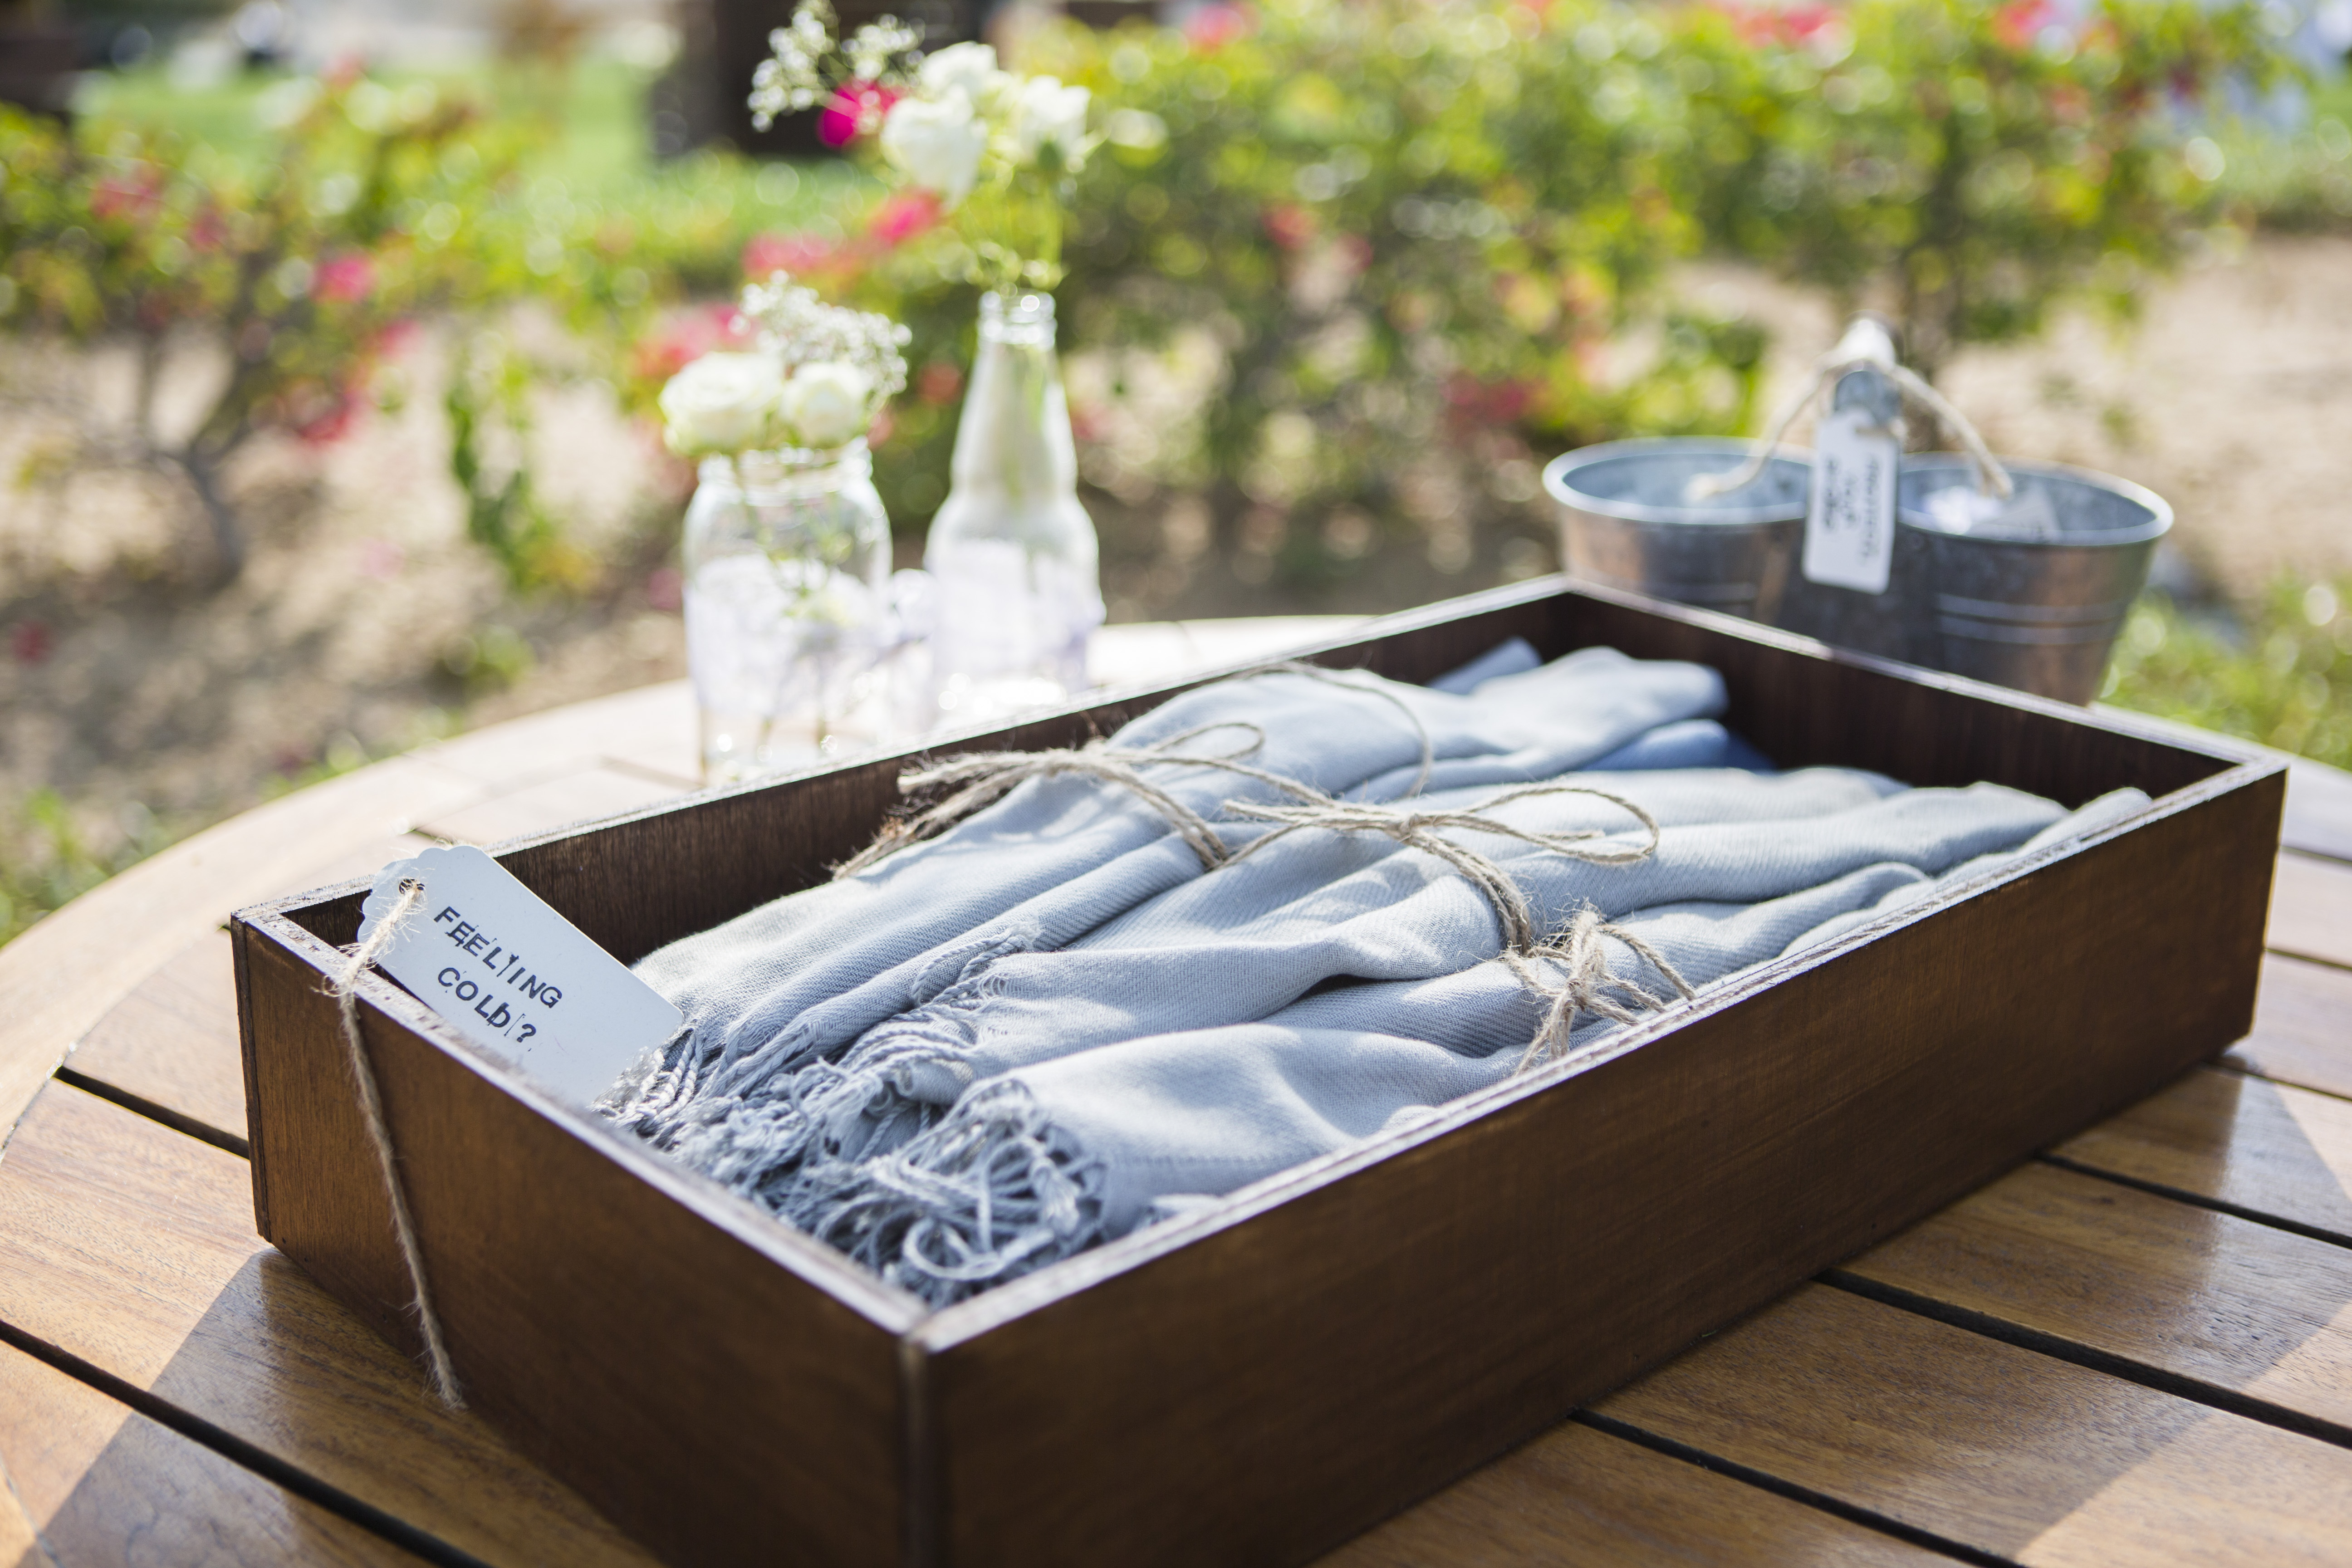 The 2 outdoor wedding must-haves… ♥